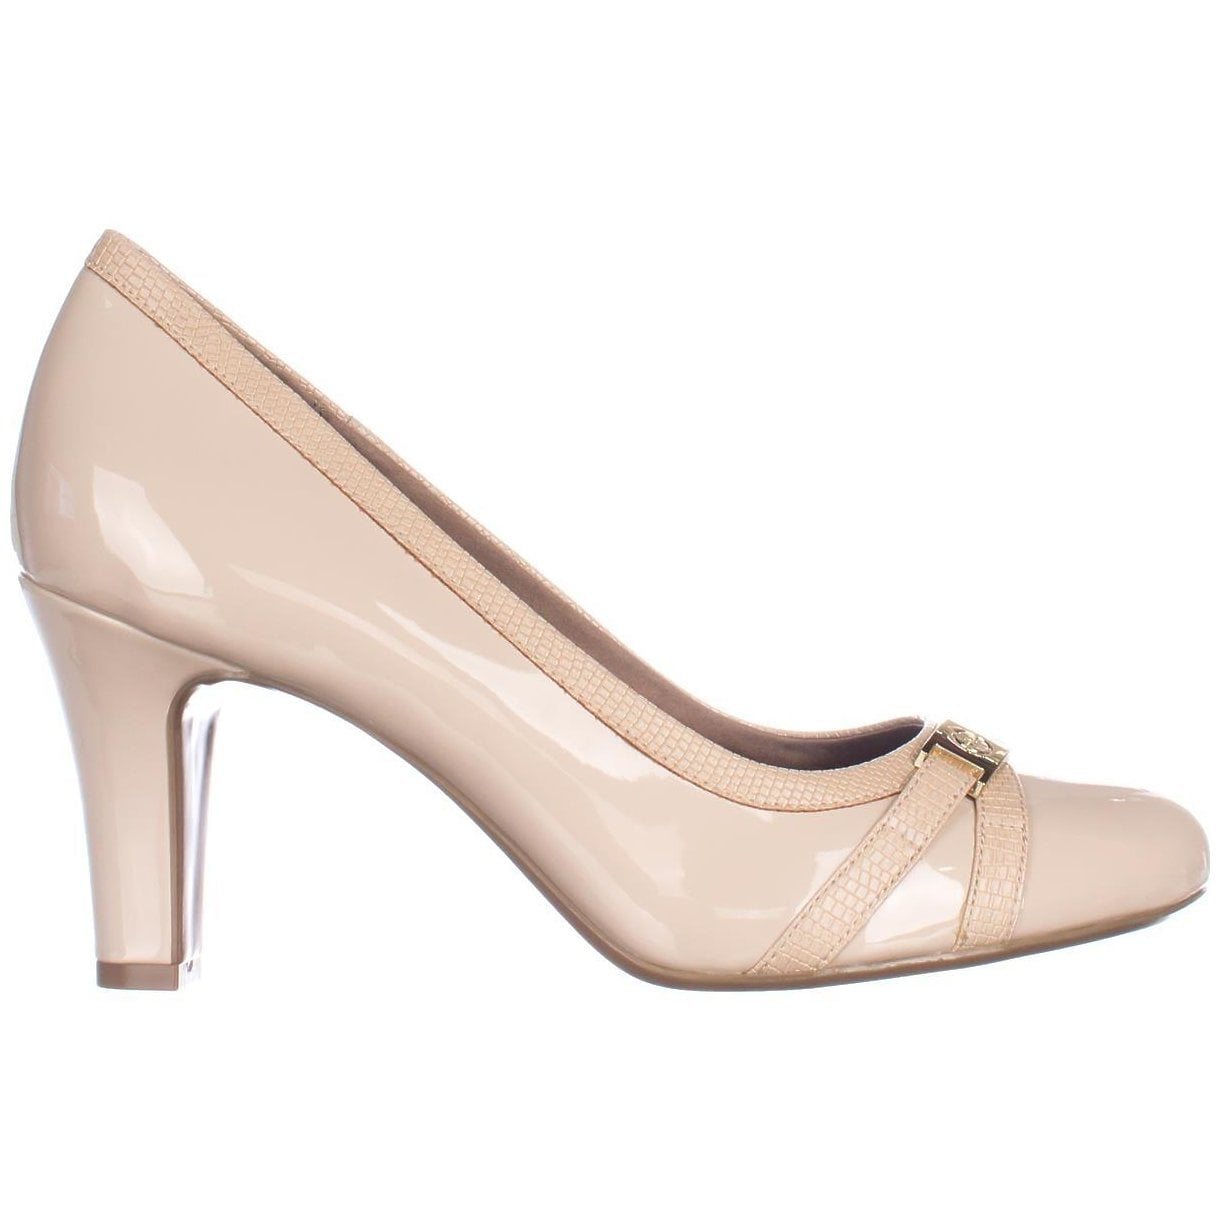 f198af37352 Shop Giani Bernini Womens Vollett Leather Closed Toe Classic Pumps - On Sale  - Free Shipping On Orders Over  45 - Overstock.com - 15426683